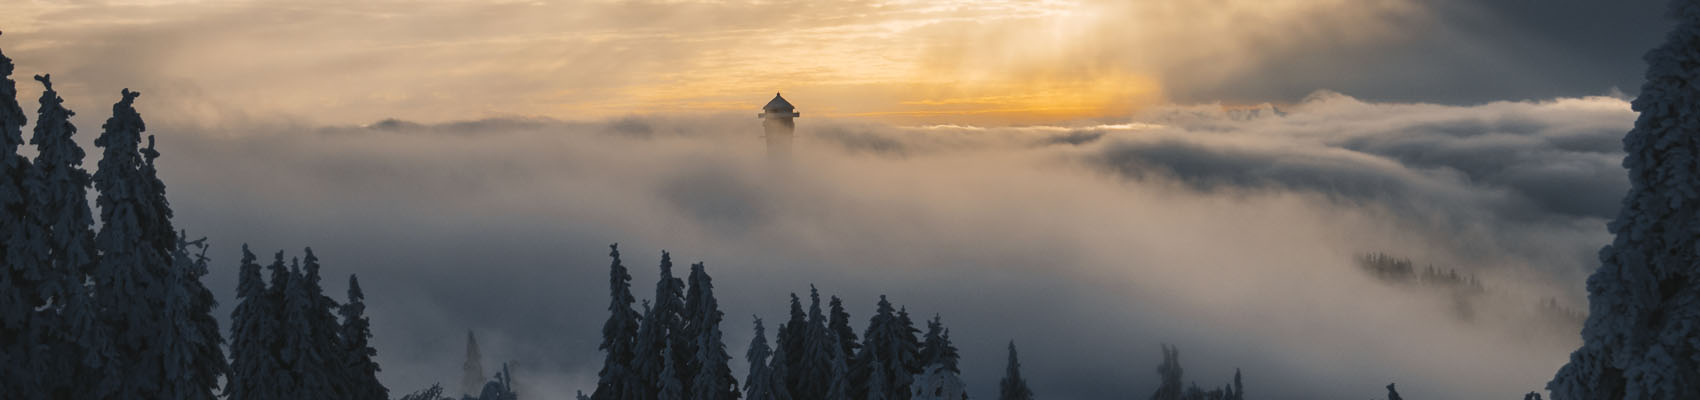 foggy morning in Feldberg, Germany